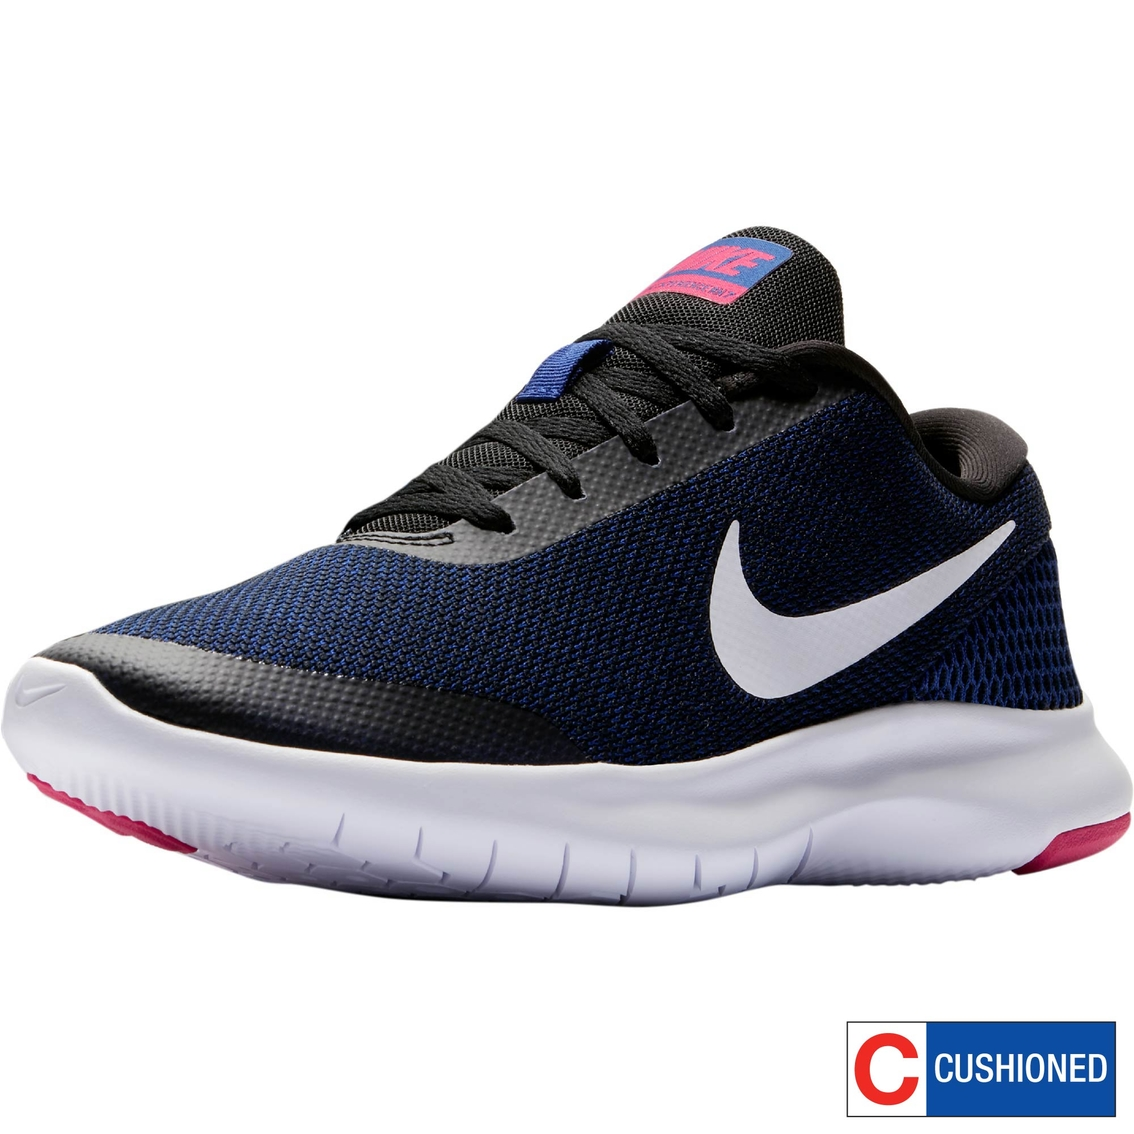 0b659850cd10f Nike Women s Flex Experience Rn 7 Running Shoes